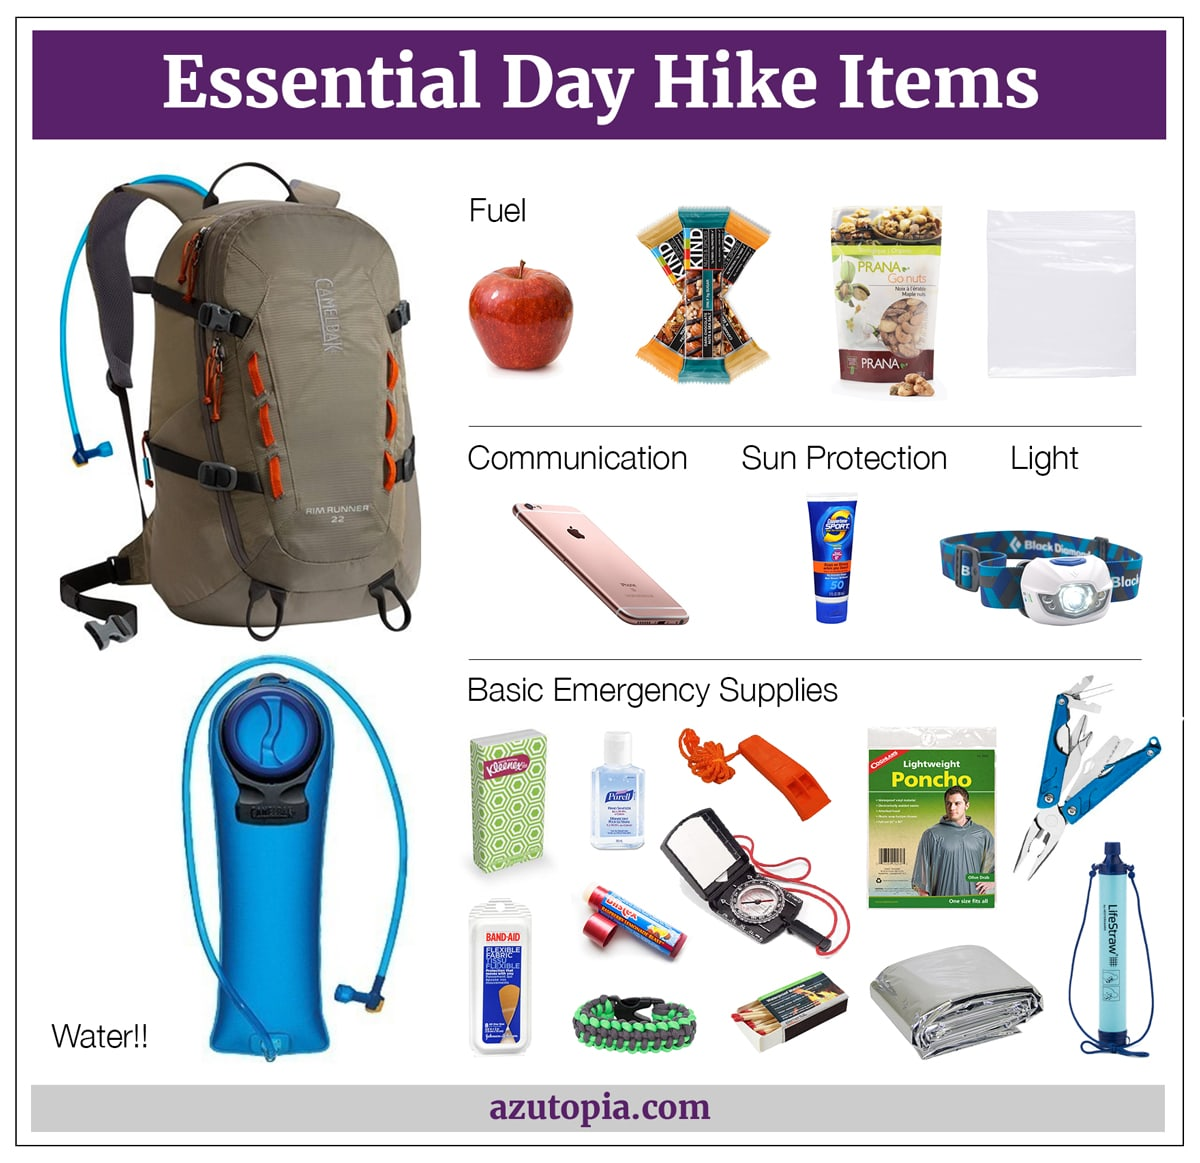 Rucksack, snacks, sunscreen, layers, compass, map, GPS, food, water, hat, gloves